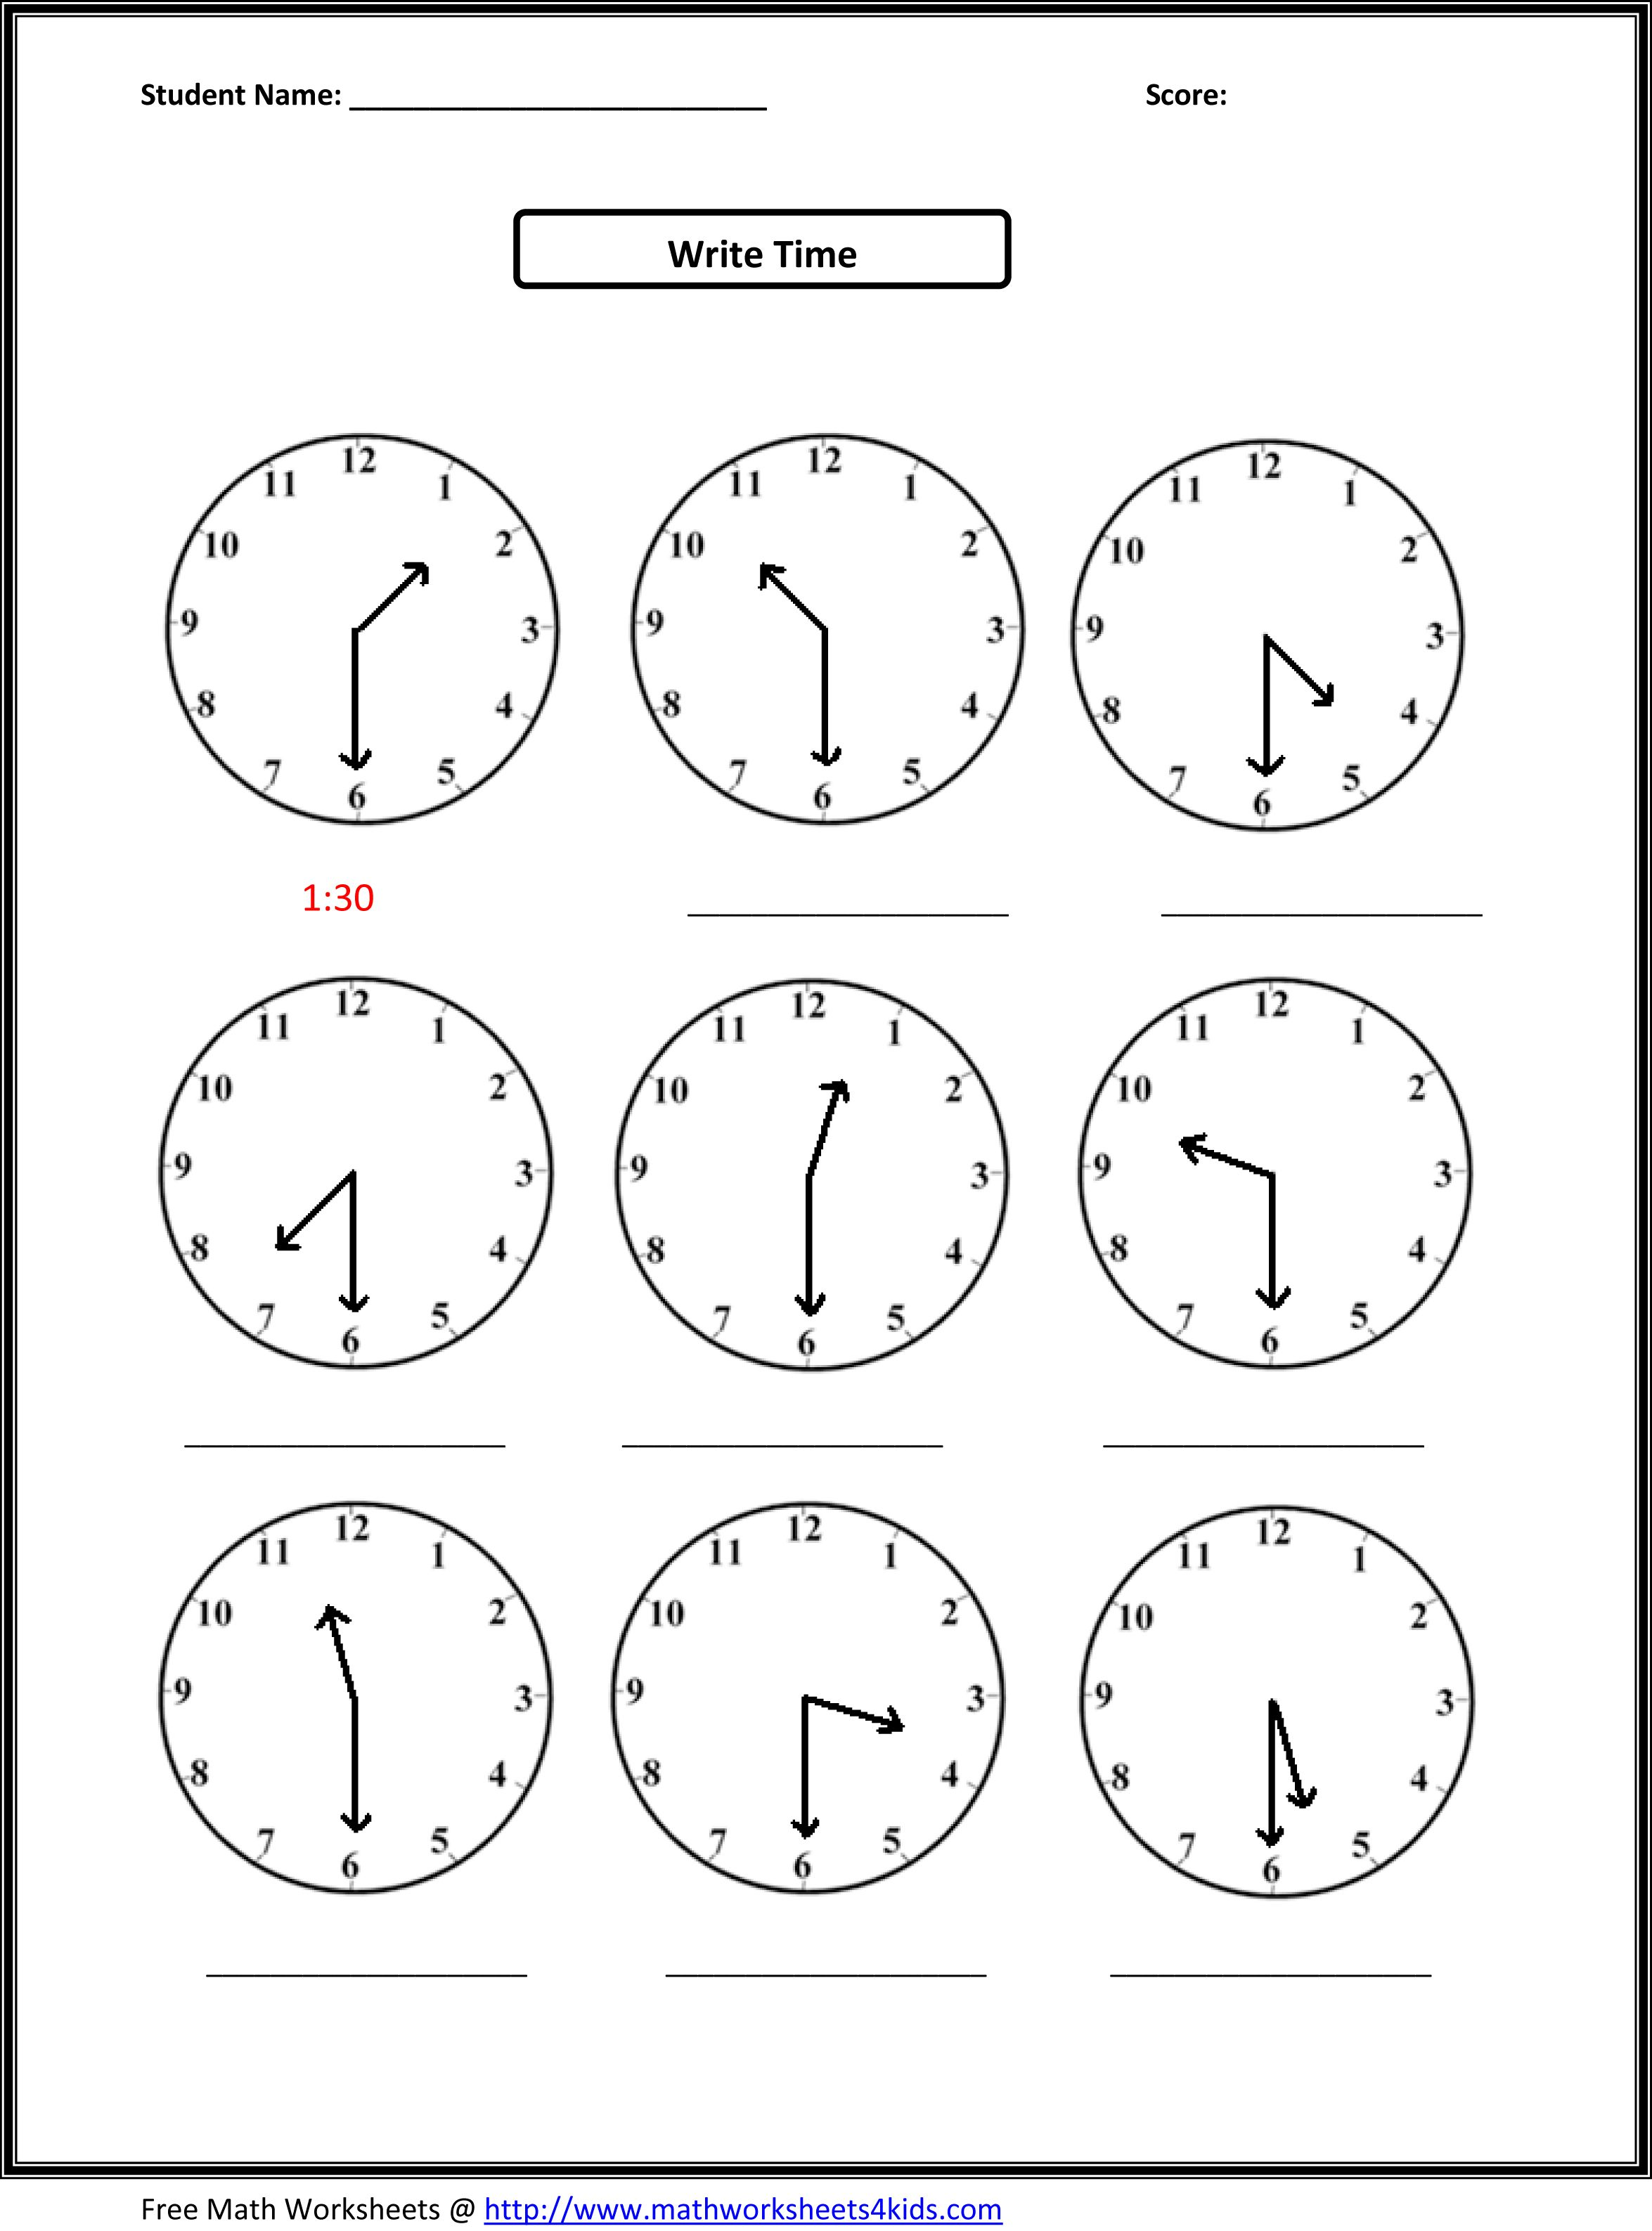 Weirdmailus  Wonderful Worksheet On Time For Grade   Reocurent With Inspiring Free Printable Telling Time Worksheets Nd Grade  Reocurent With Comely Ellipsis Worksheets Also Self Confidence Worksheet In Addition Parts Of A Plant Worksheet For Kindergarten And Storyworks Worksheets As Well As Figured Bass Worksheets Additionally Free Printable Hidden Picture Worksheets From Reocurentcom With Weirdmailus  Inspiring Worksheet On Time For Grade   Reocurent With Comely Free Printable Telling Time Worksheets Nd Grade  Reocurent And Wonderful Ellipsis Worksheets Also Self Confidence Worksheet In Addition Parts Of A Plant Worksheet For Kindergarten From Reocurentcom